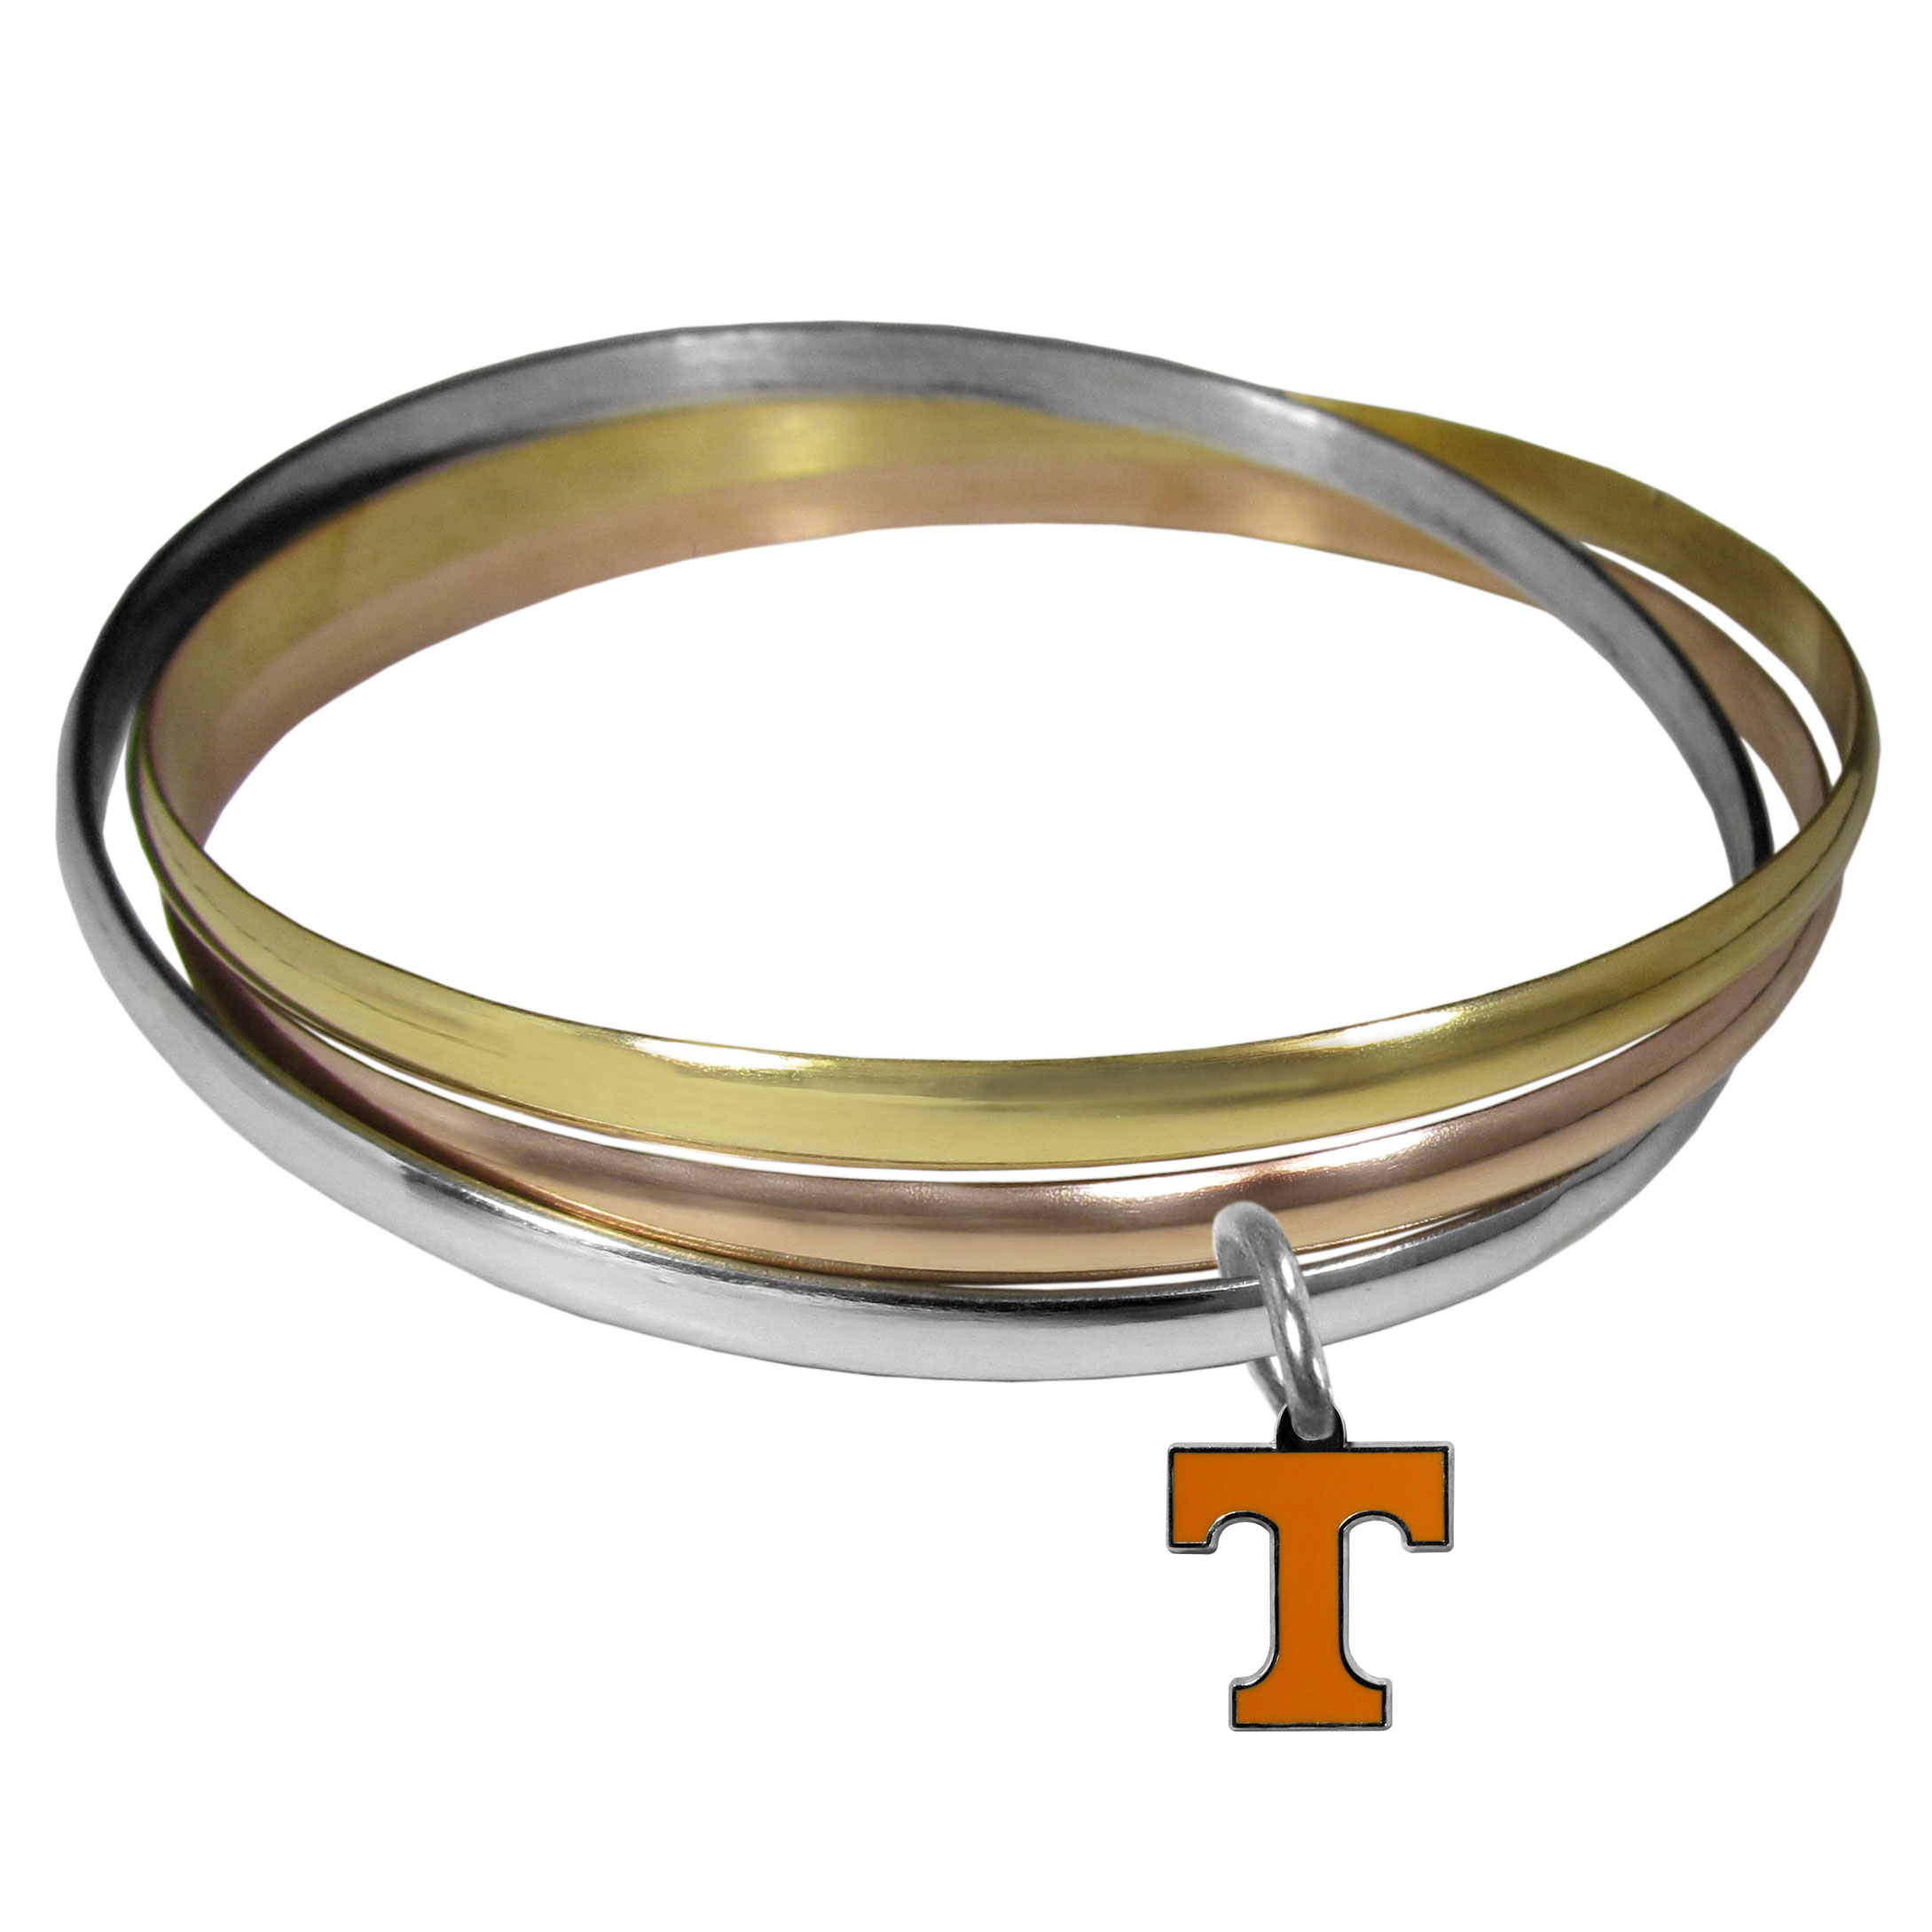 Tennessee Volunteers Tri-color Bangle Bracelet - These beautiful bangles come in a interlocking style and feature a fully cast Tennessee Volunteers charm with enameled team colors. The bracelet has a silver toned bangle, gold tone bangle and brass toned bangle.